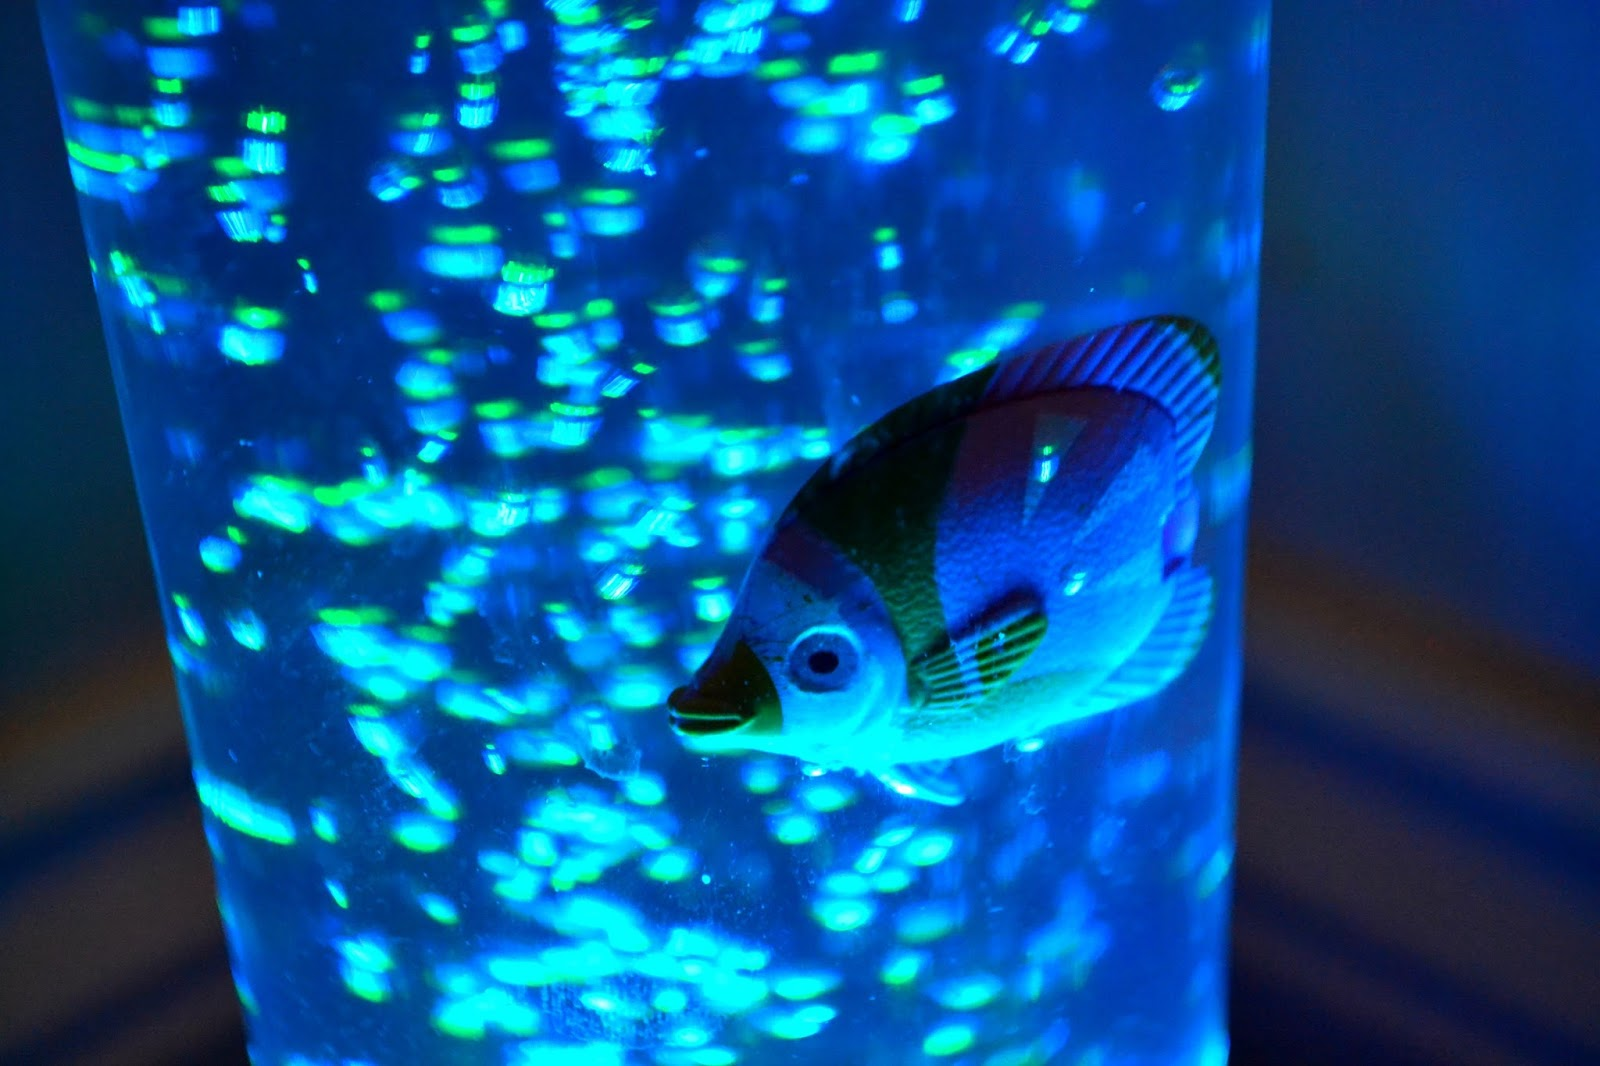 bubble-lamp-with-fish-photo-11